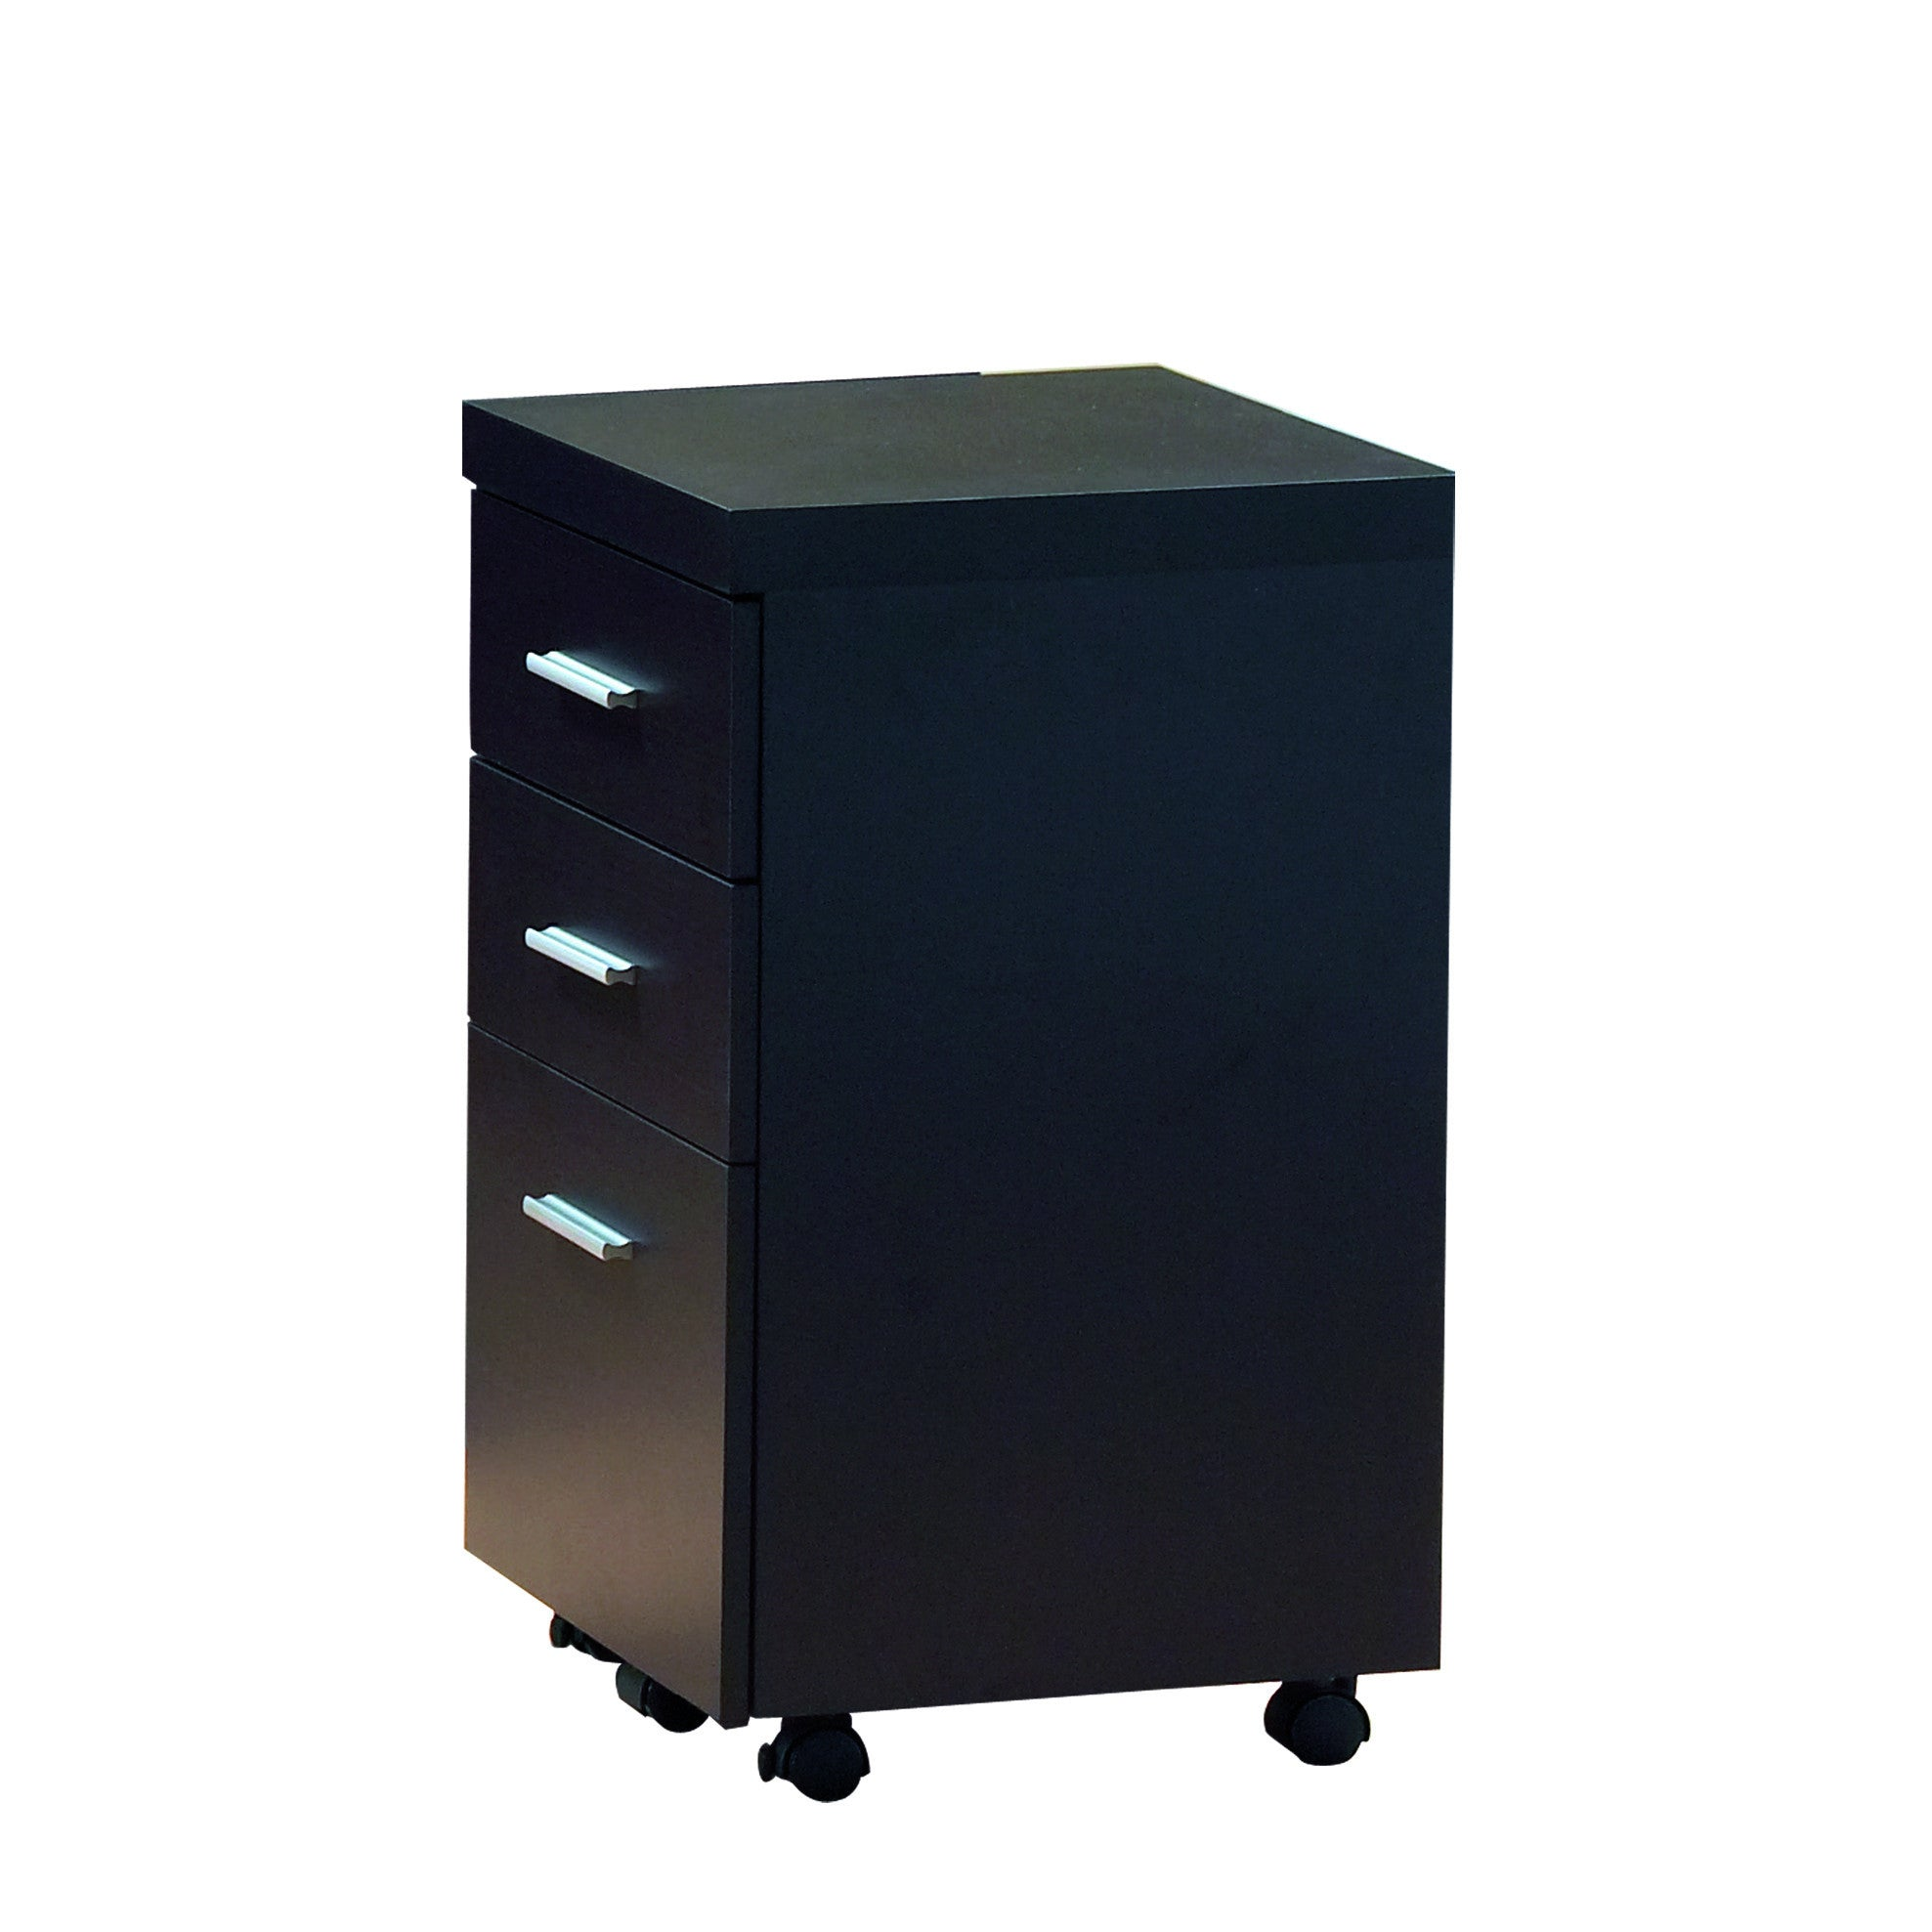 Office table with drawers Drawer Cappuccino Corner Lshaped Office Desk With Drawers Shelving Furniture Wholesalers Cappuccino Corner Lshaped Office Desk With Drawers Shelving